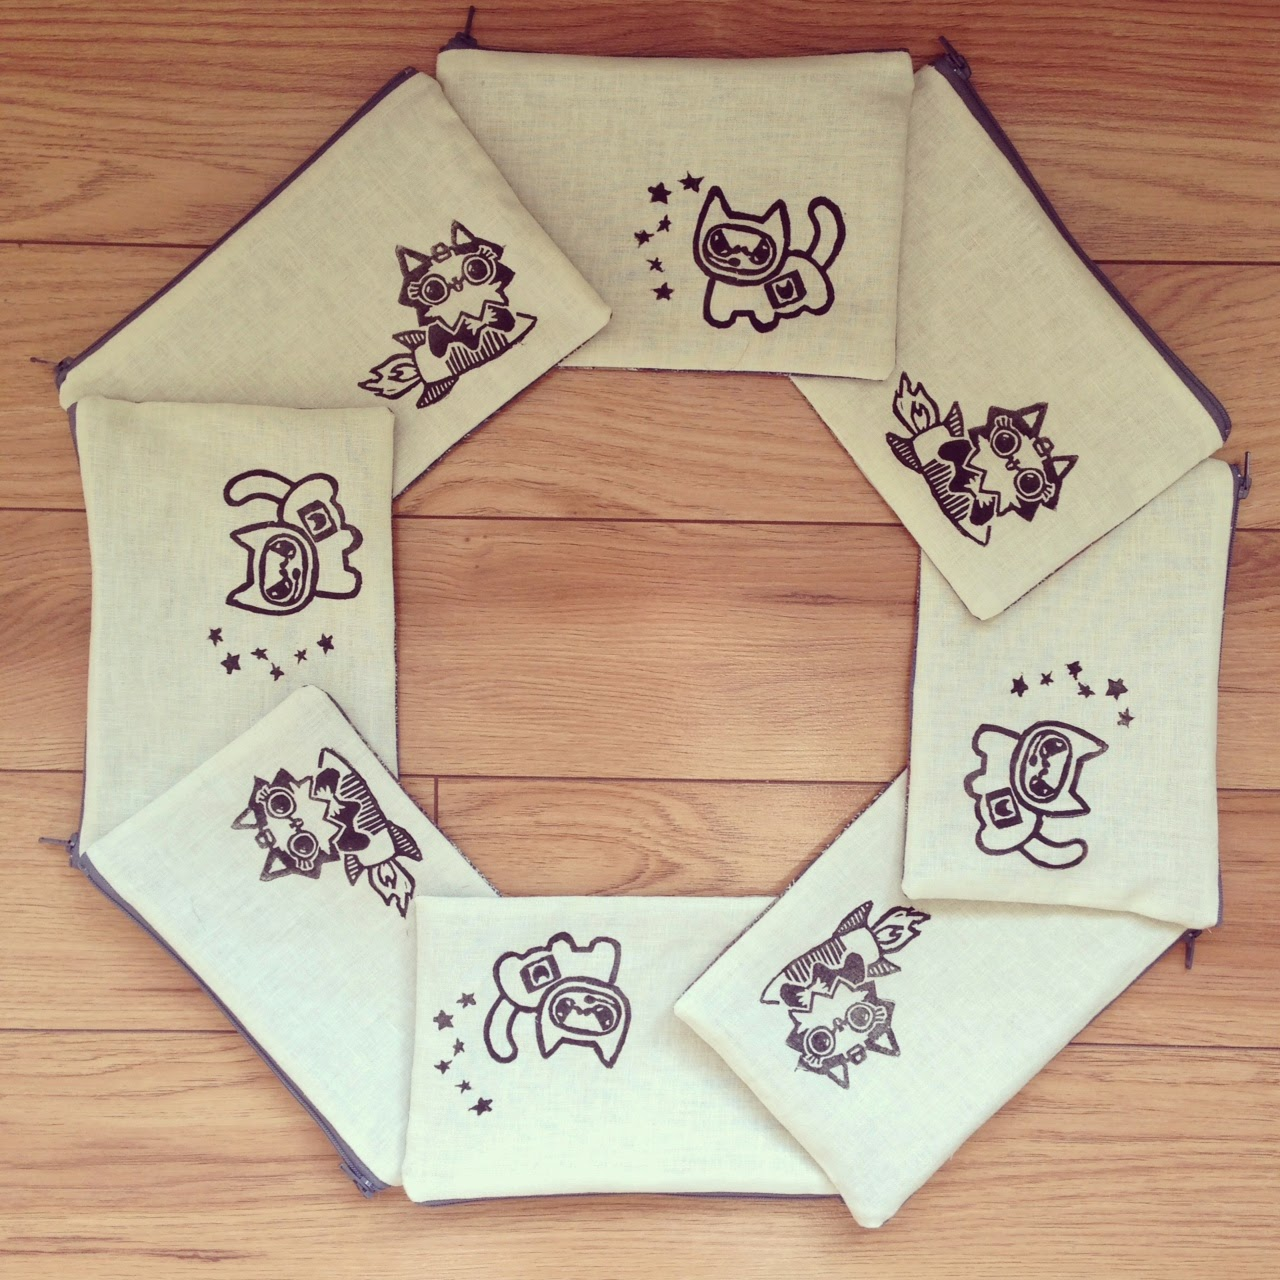 Cats in Space pouches arranged in the shape of a STOP sign.